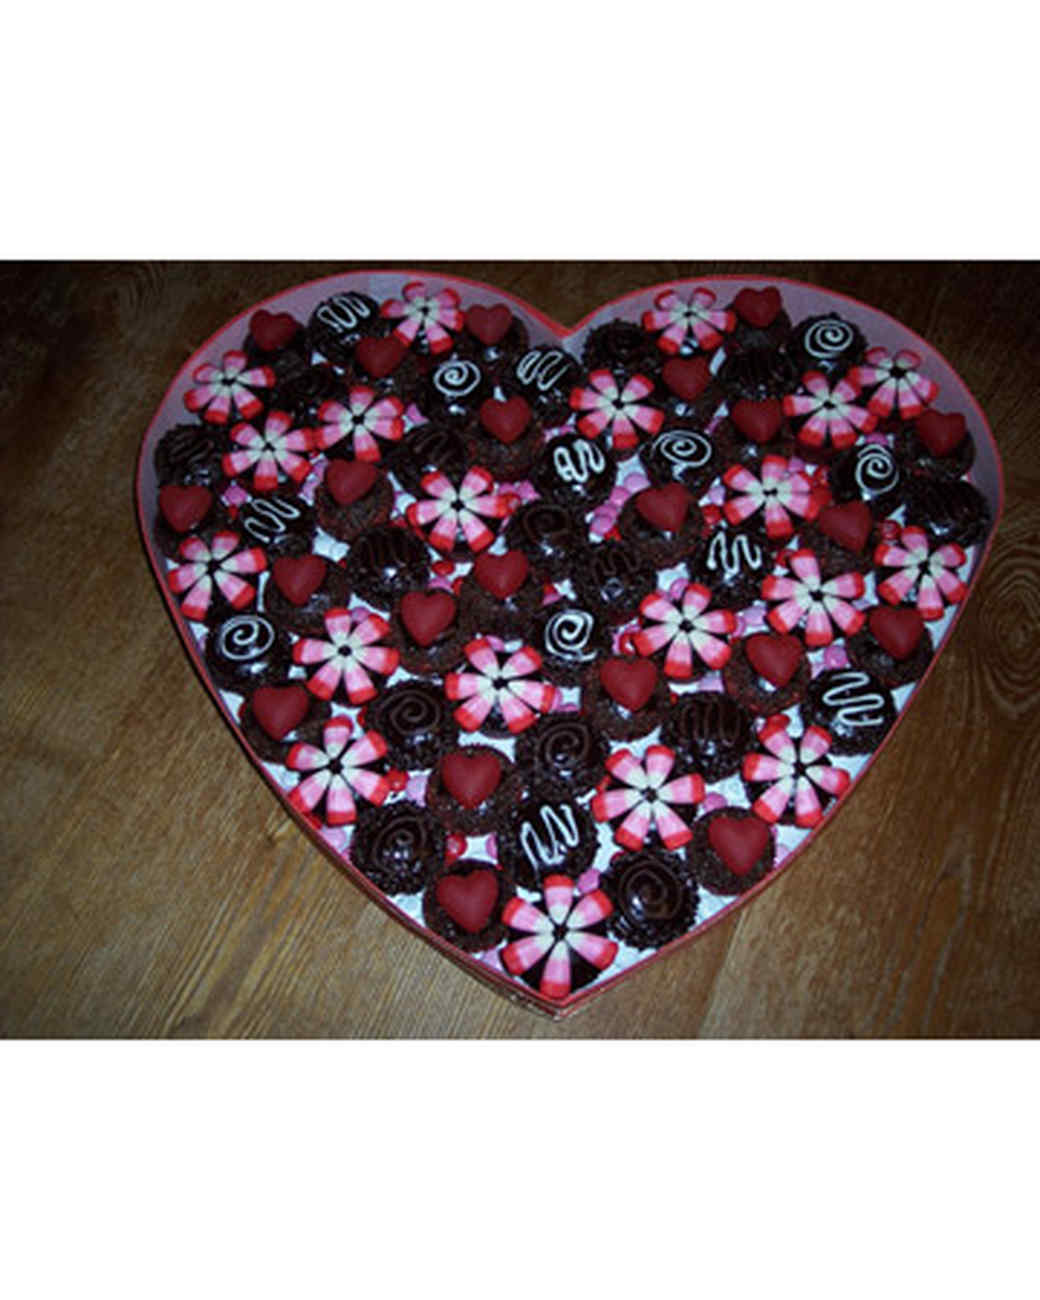 vday_treat_ugc09_box_of_chocolates_cupcakes.jpg